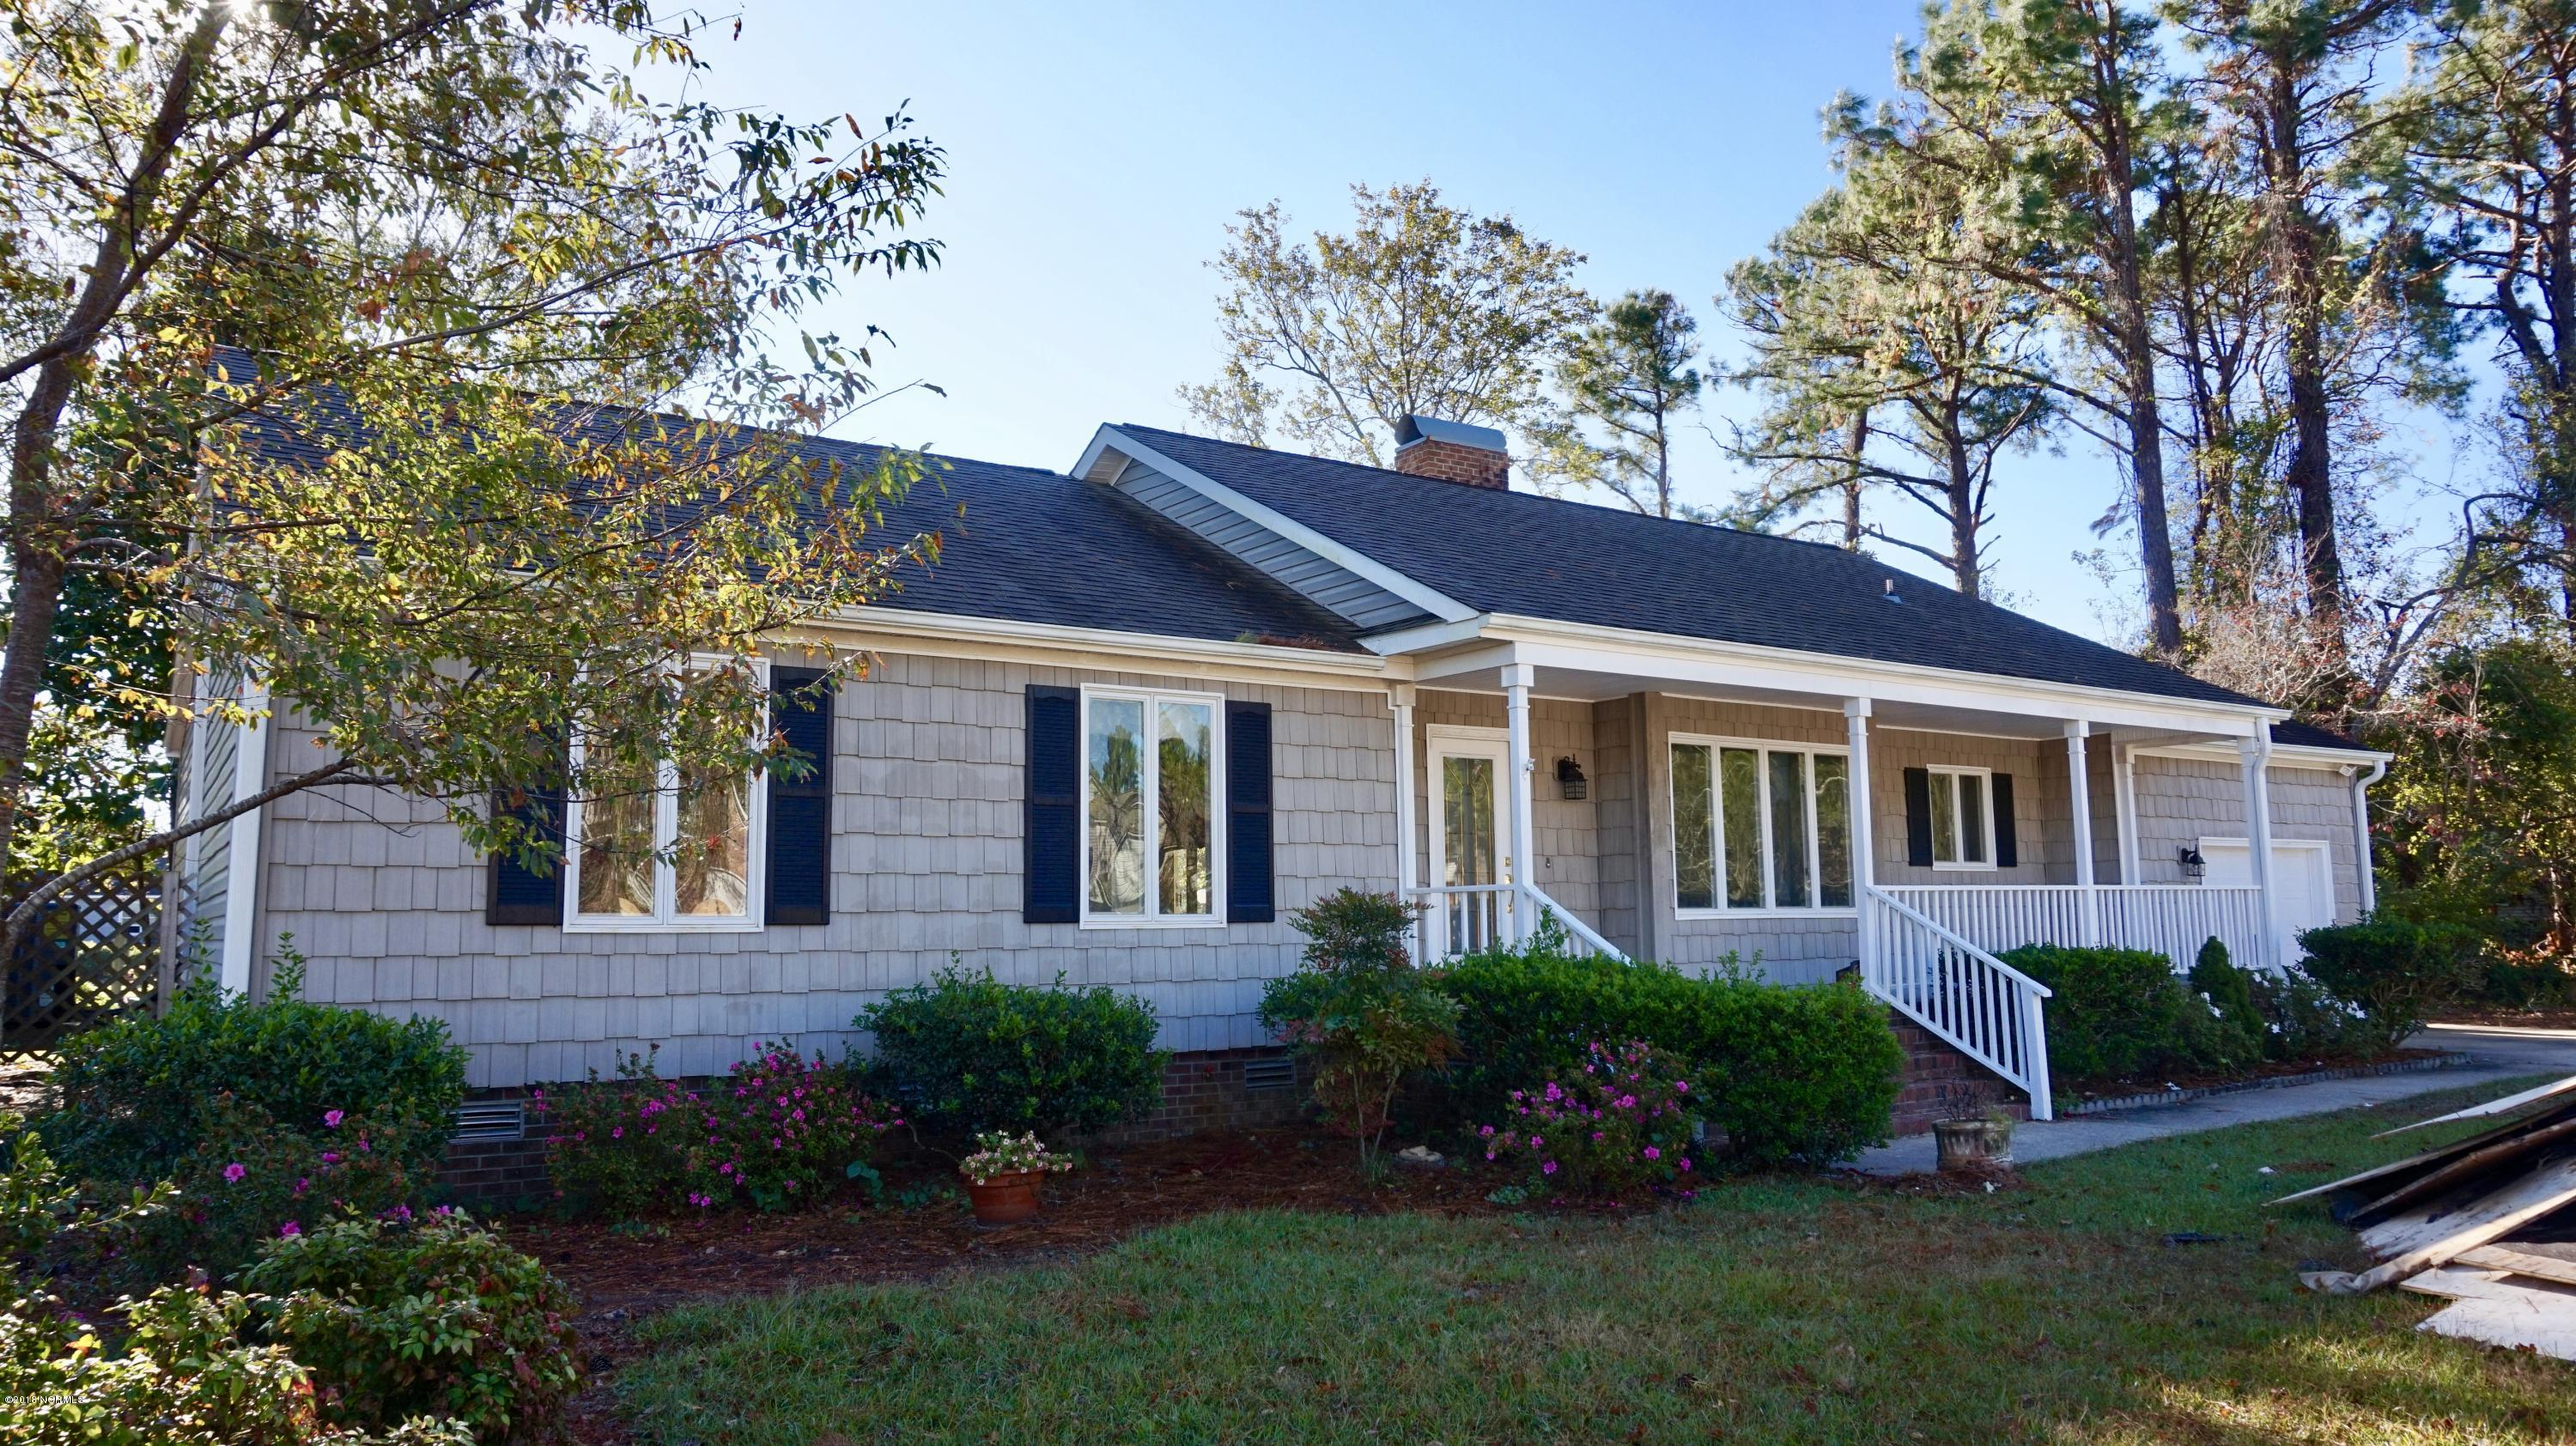 902 Coral Court, New Bern, North Carolina, 3 Bedrooms Bedrooms, 7 Rooms Rooms,2 BathroomsBathrooms,Single family residence,For sale,Coral,100139543